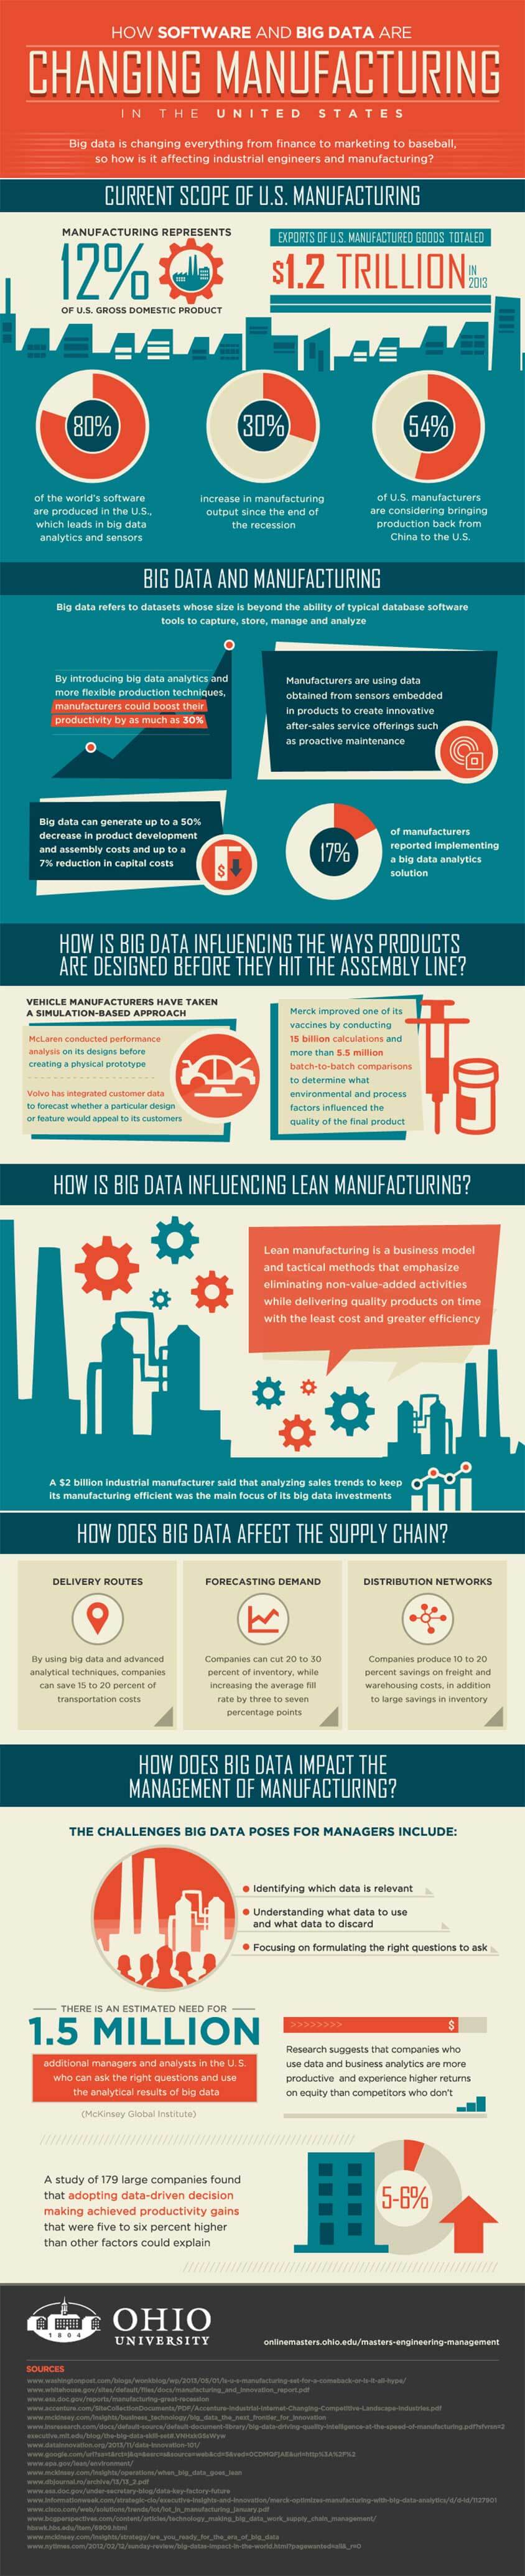 How Software and Big Data are Changing Manufacturing in the United States infographic